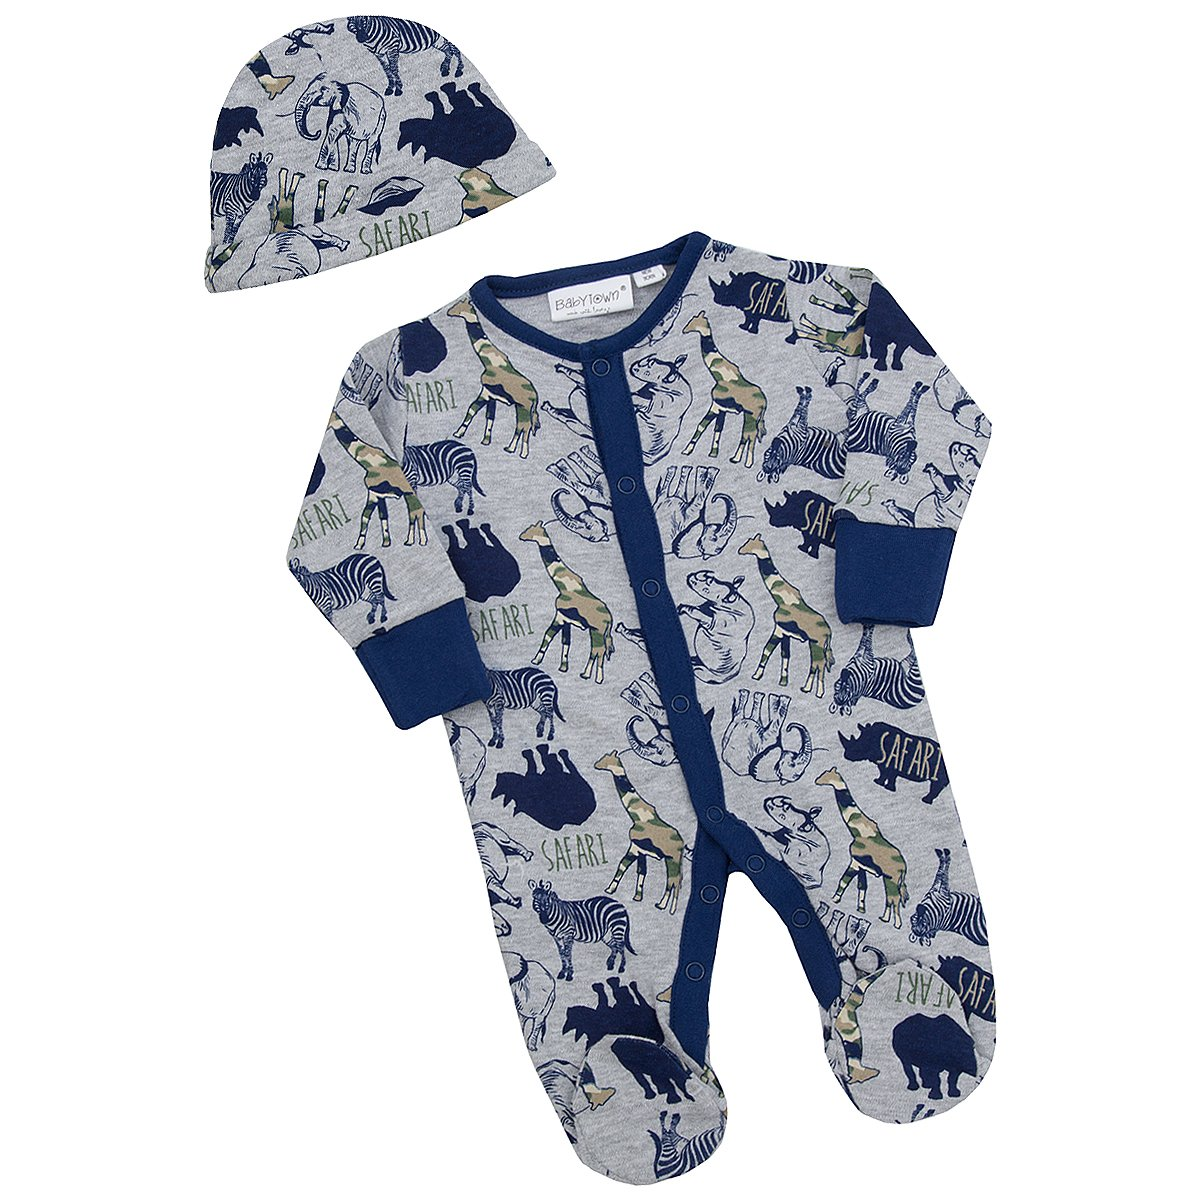 BABY TOWN Baby Boys Camo Safari Sleepsuit (Newborn-9 Months) Integrated Scratch Mittens Cotton Rich All-in-One Babytown